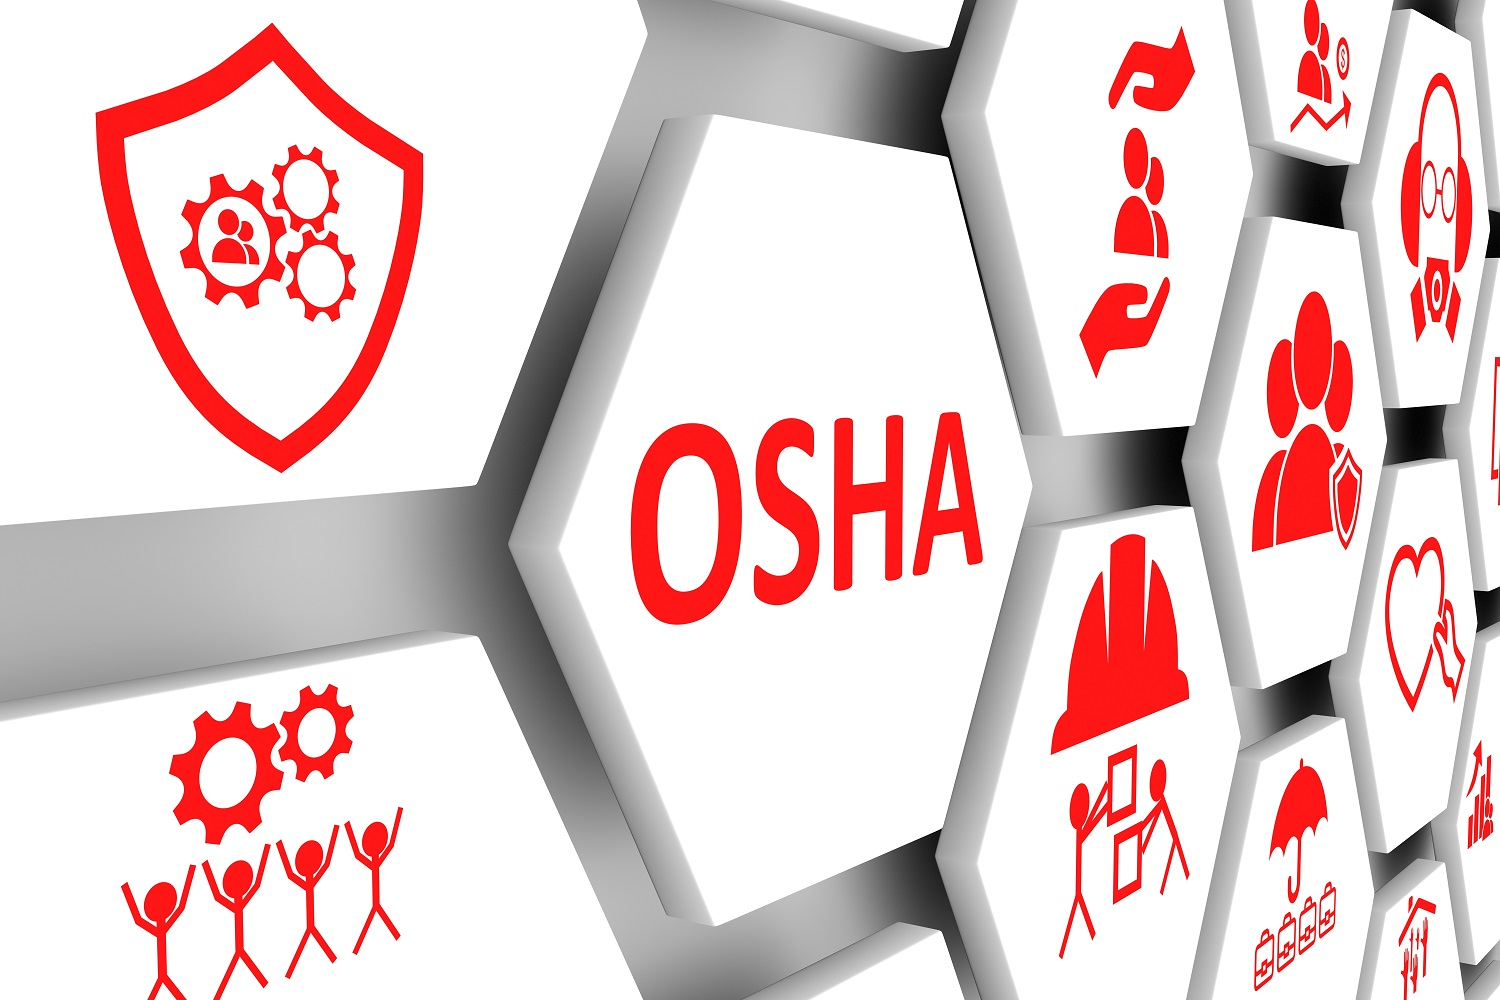 OSHA Top 10 Most Frequently Cited Standards